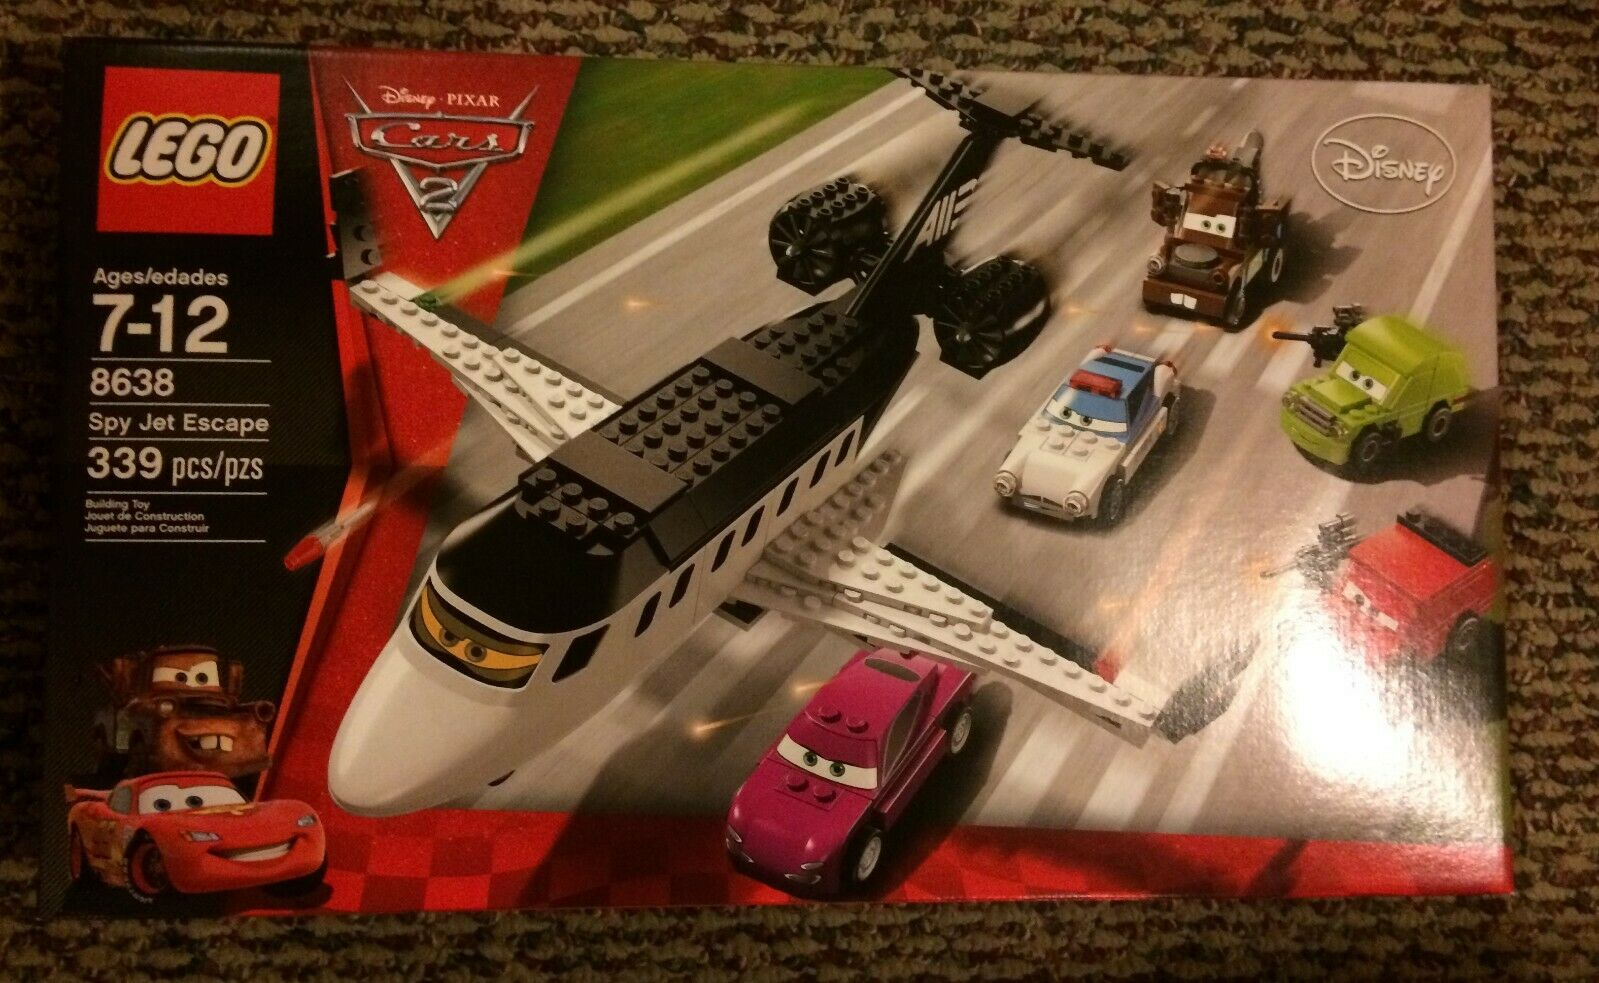 LEGO 8638 Autos Spy Jet Escape - BRAND NEW SEALED